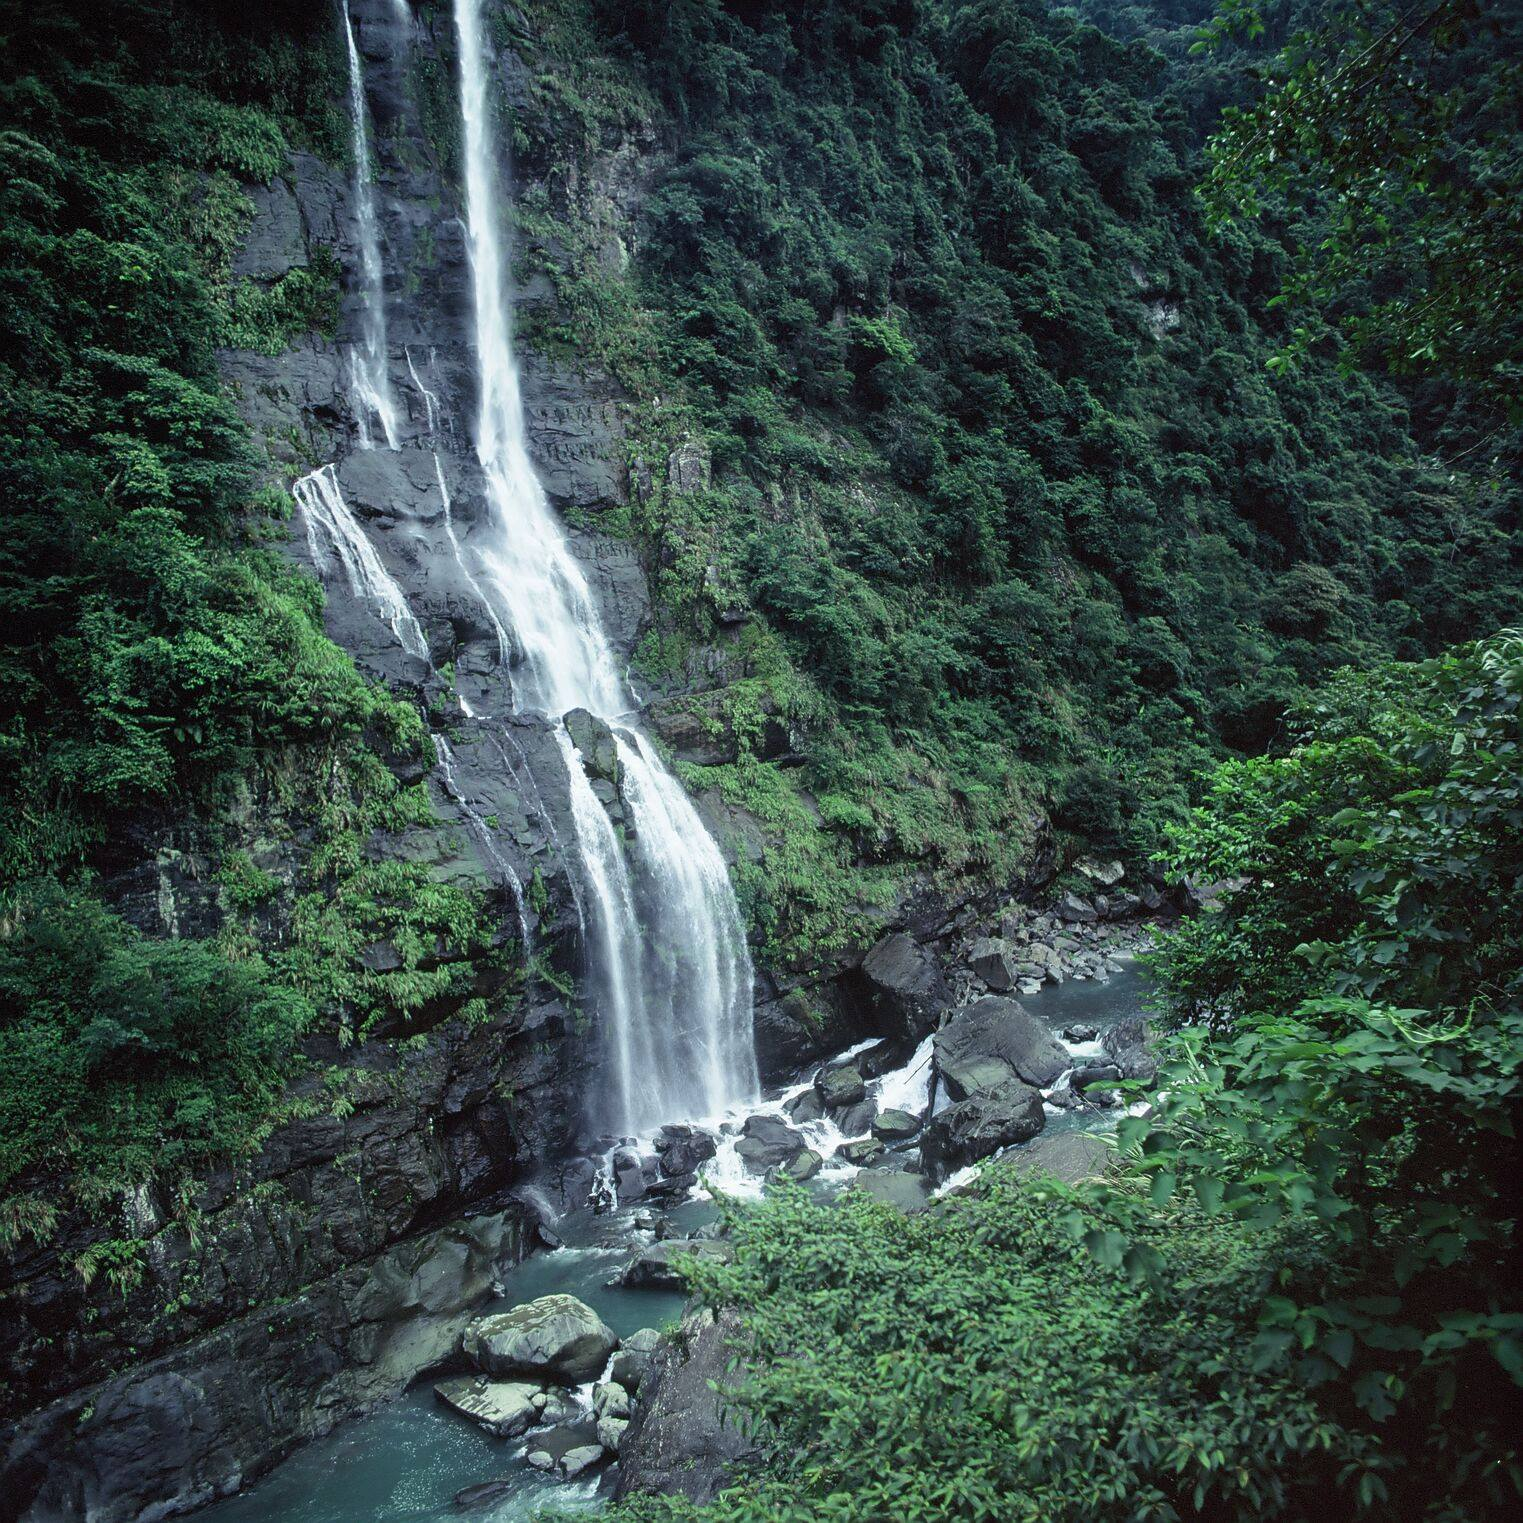 Wulai-Waterfall